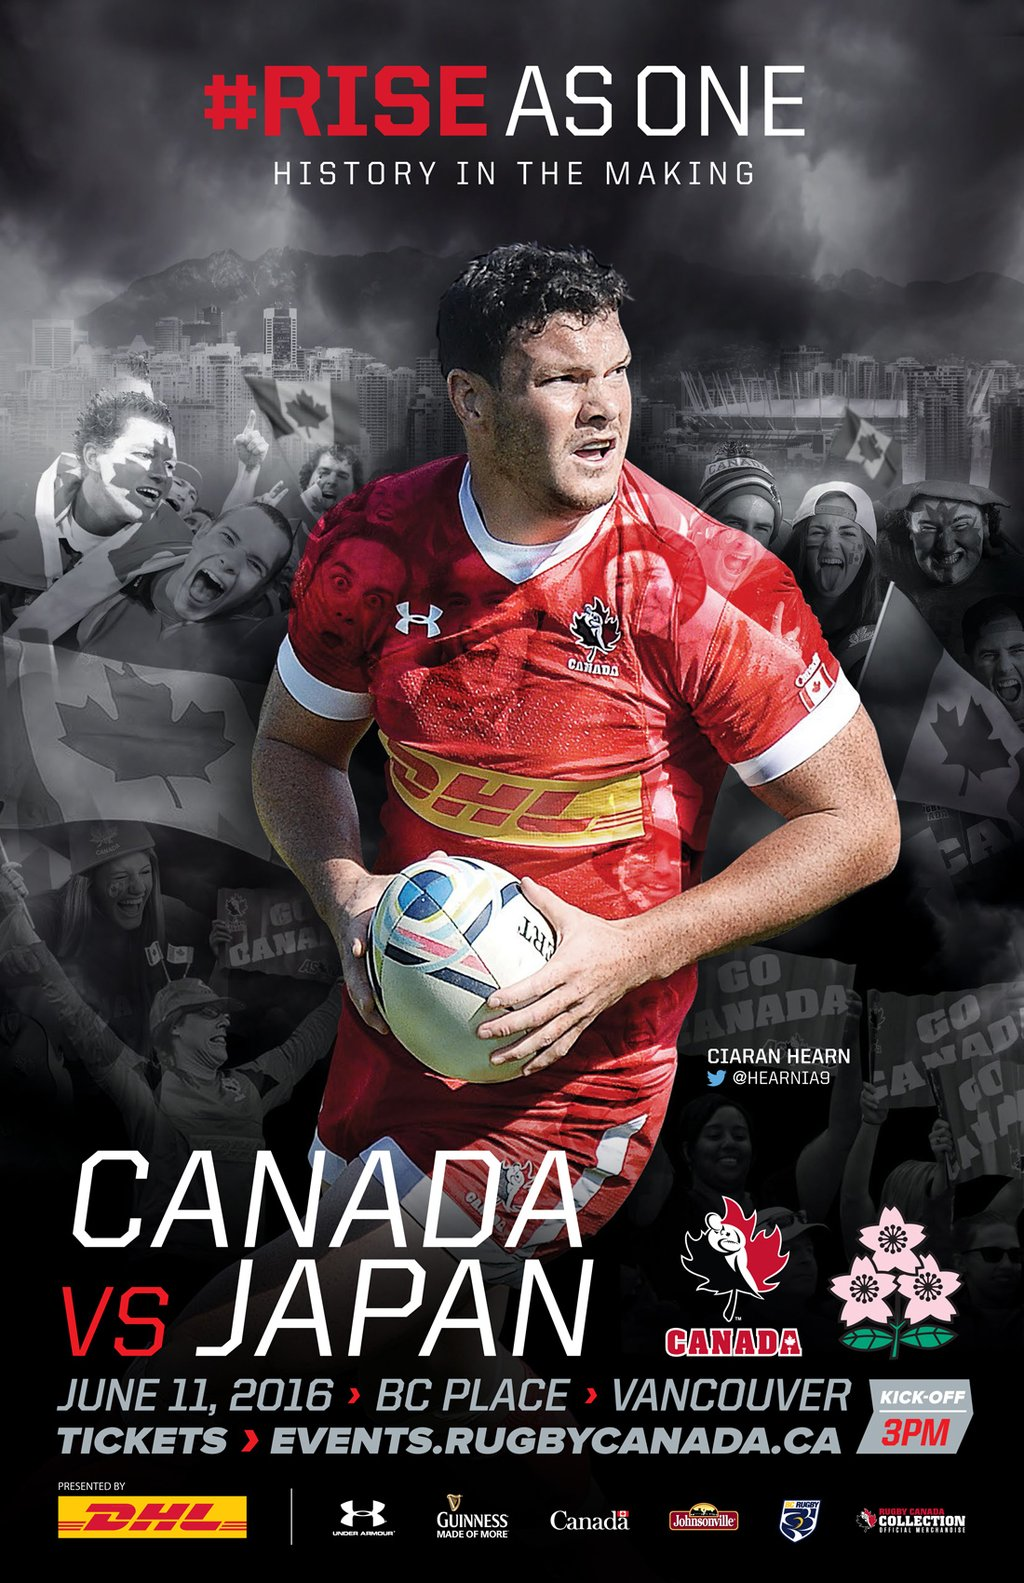 Rugby_Canada_vs_Japan_promo_poster